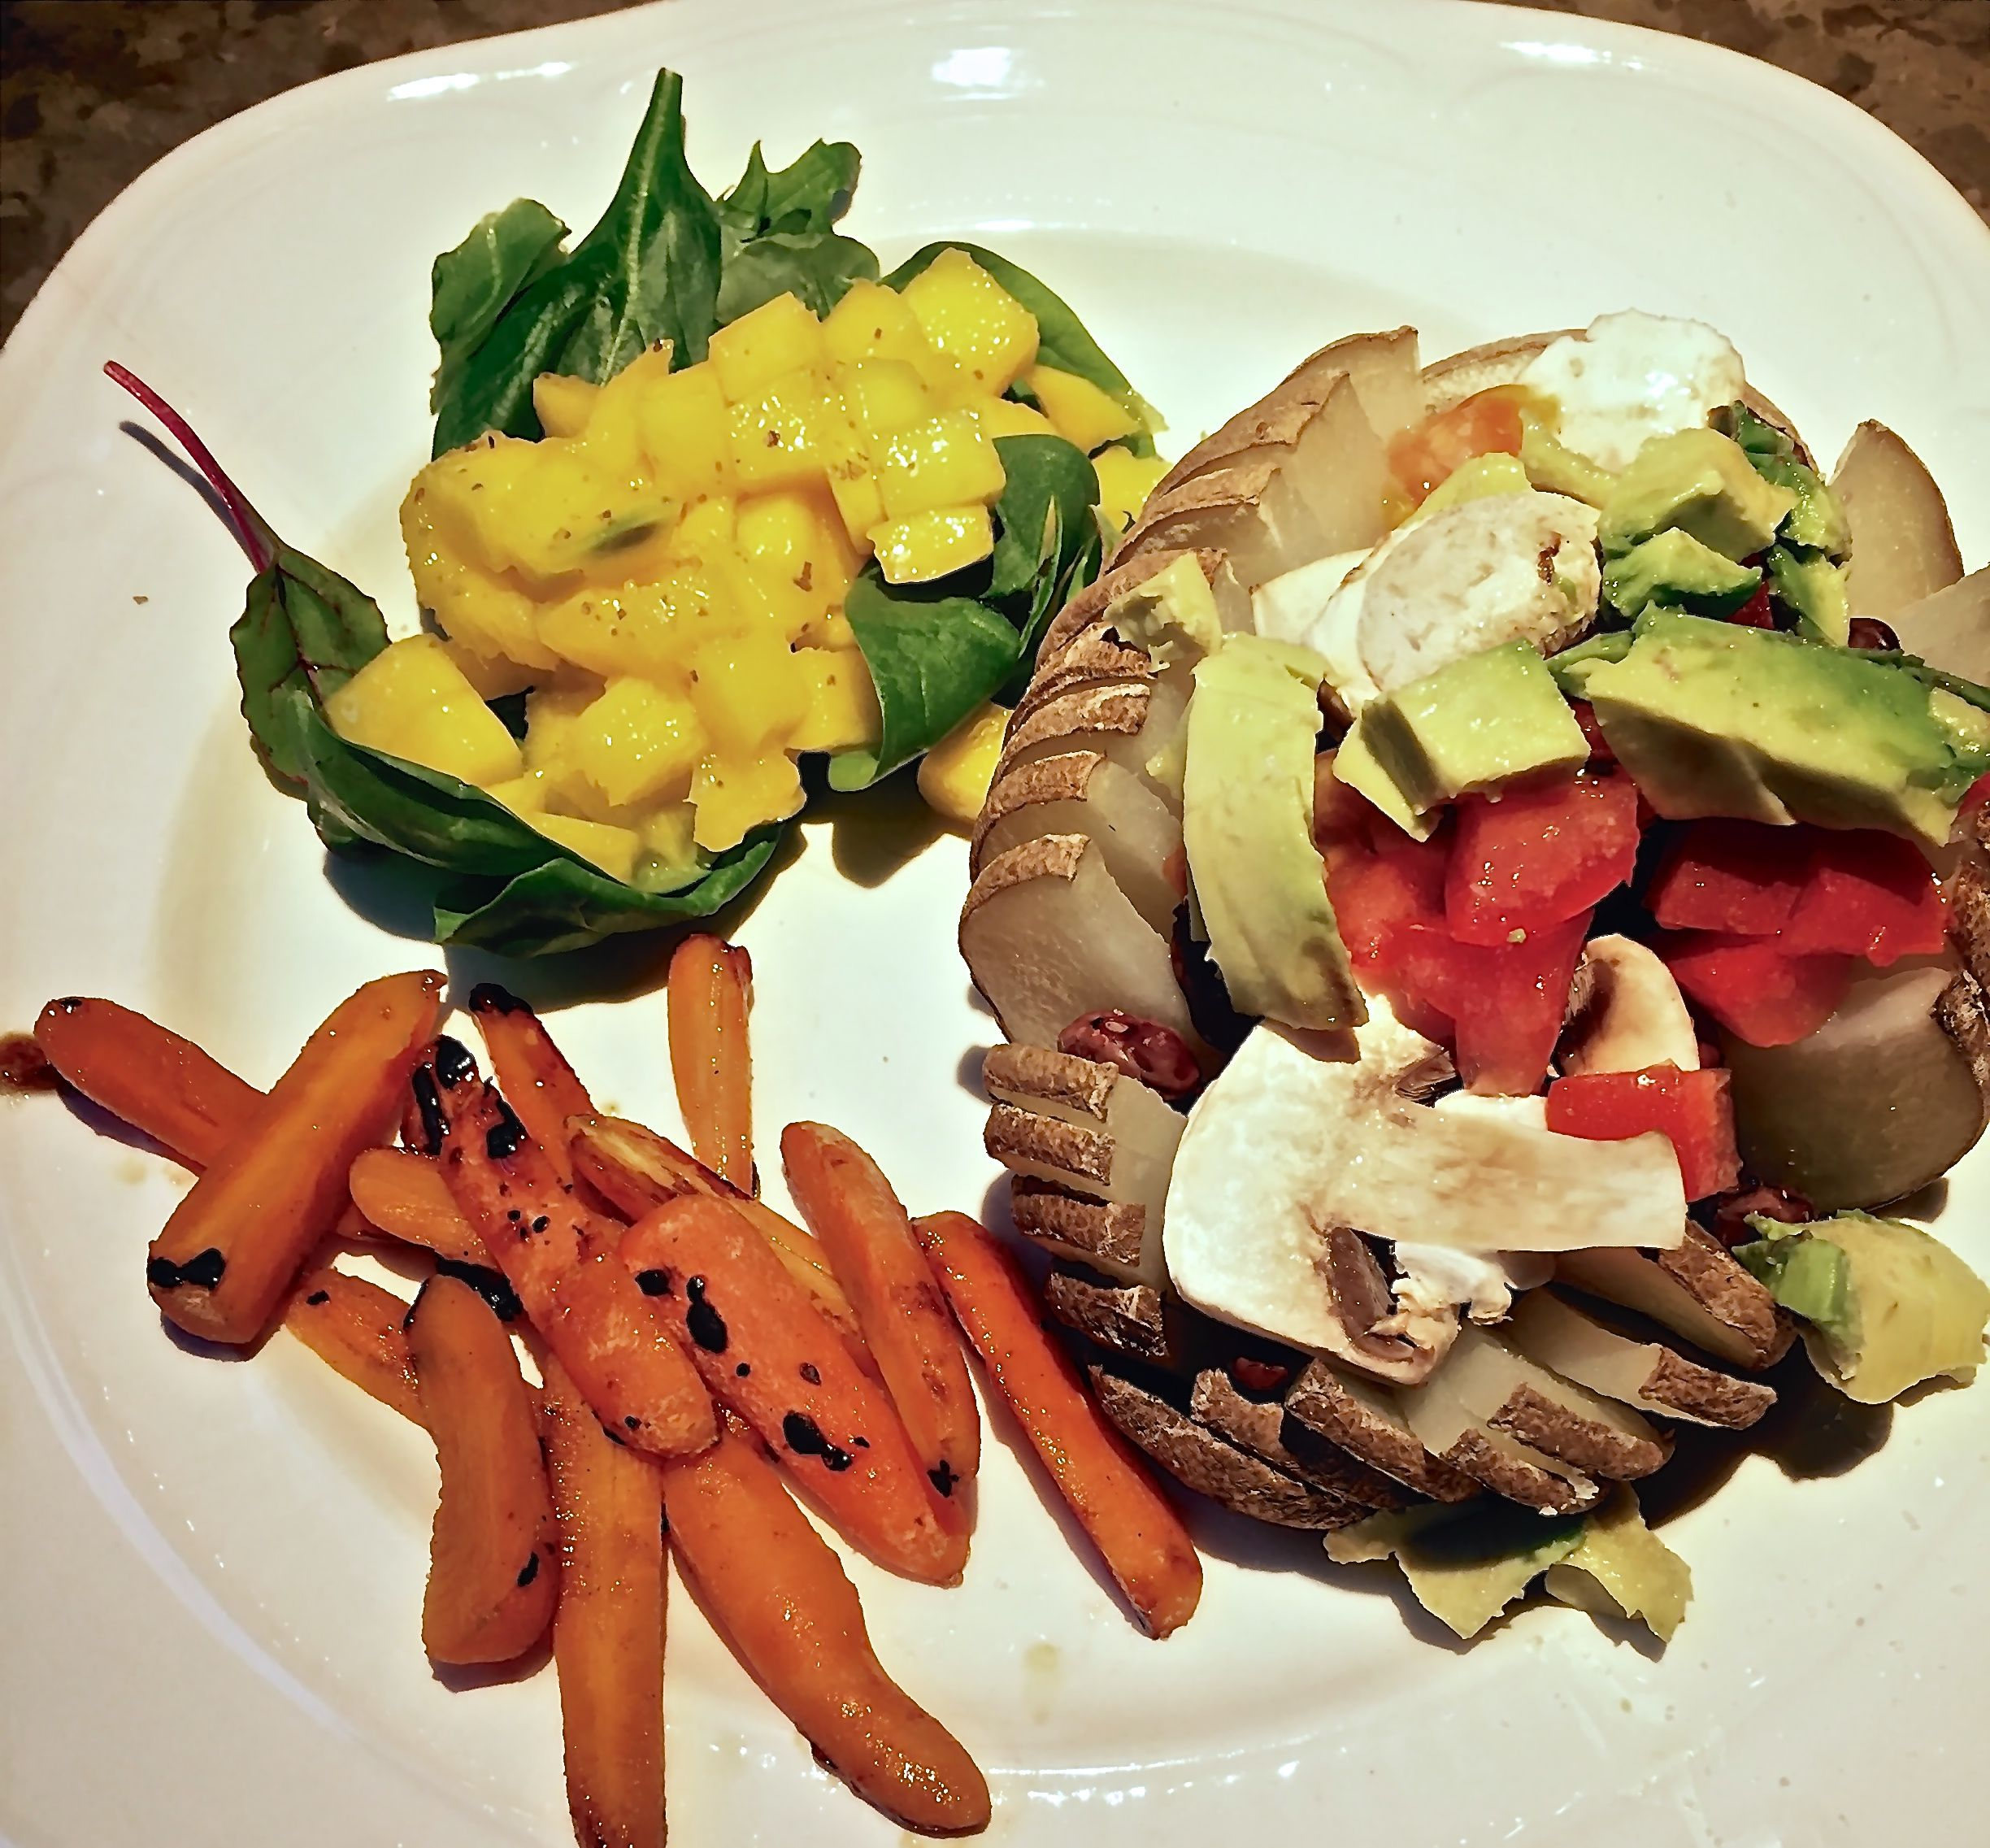 Baked potato with mushrooms, beans, avocado and tomatoes. Mango and spinach plus carrots with honey and lime.